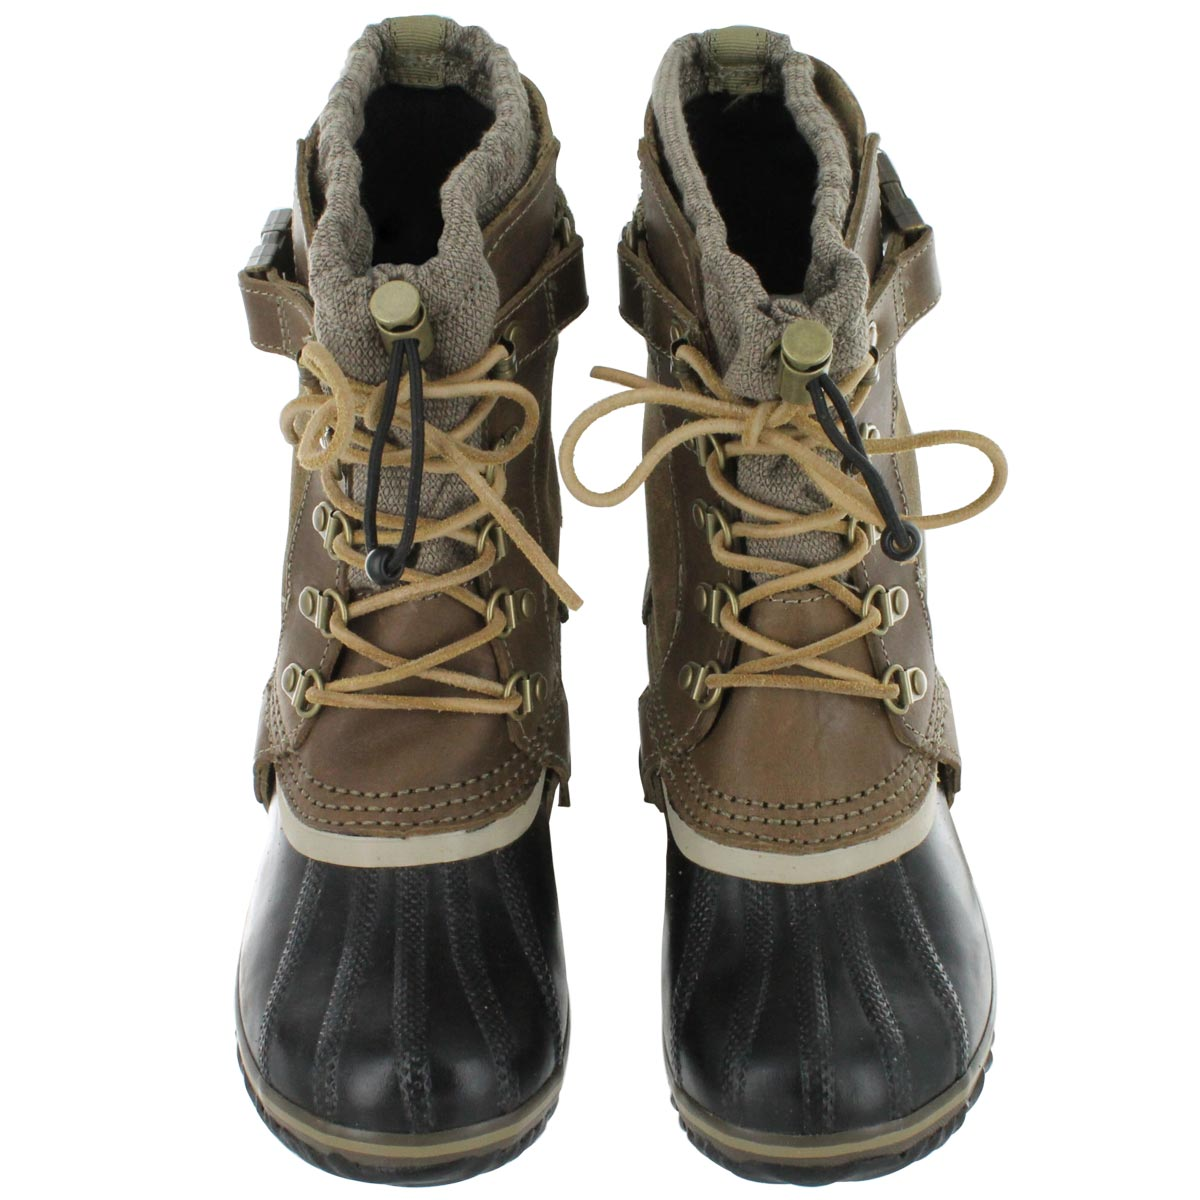 Women's Sorel Winter Boots Clearance | Homewood Mountain Ski Resort